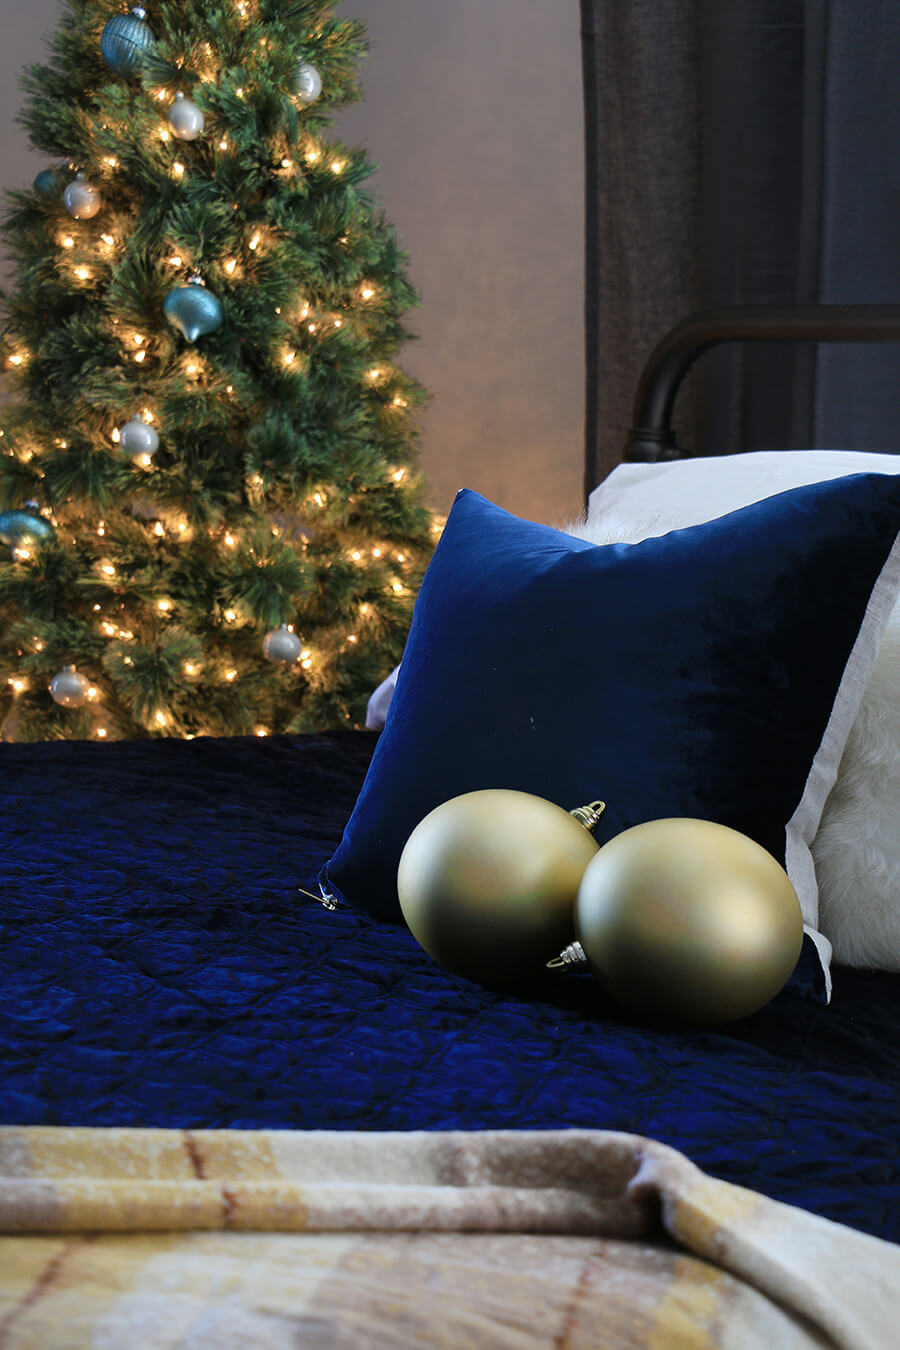 Bed-pillow-christmas-tree-in-background